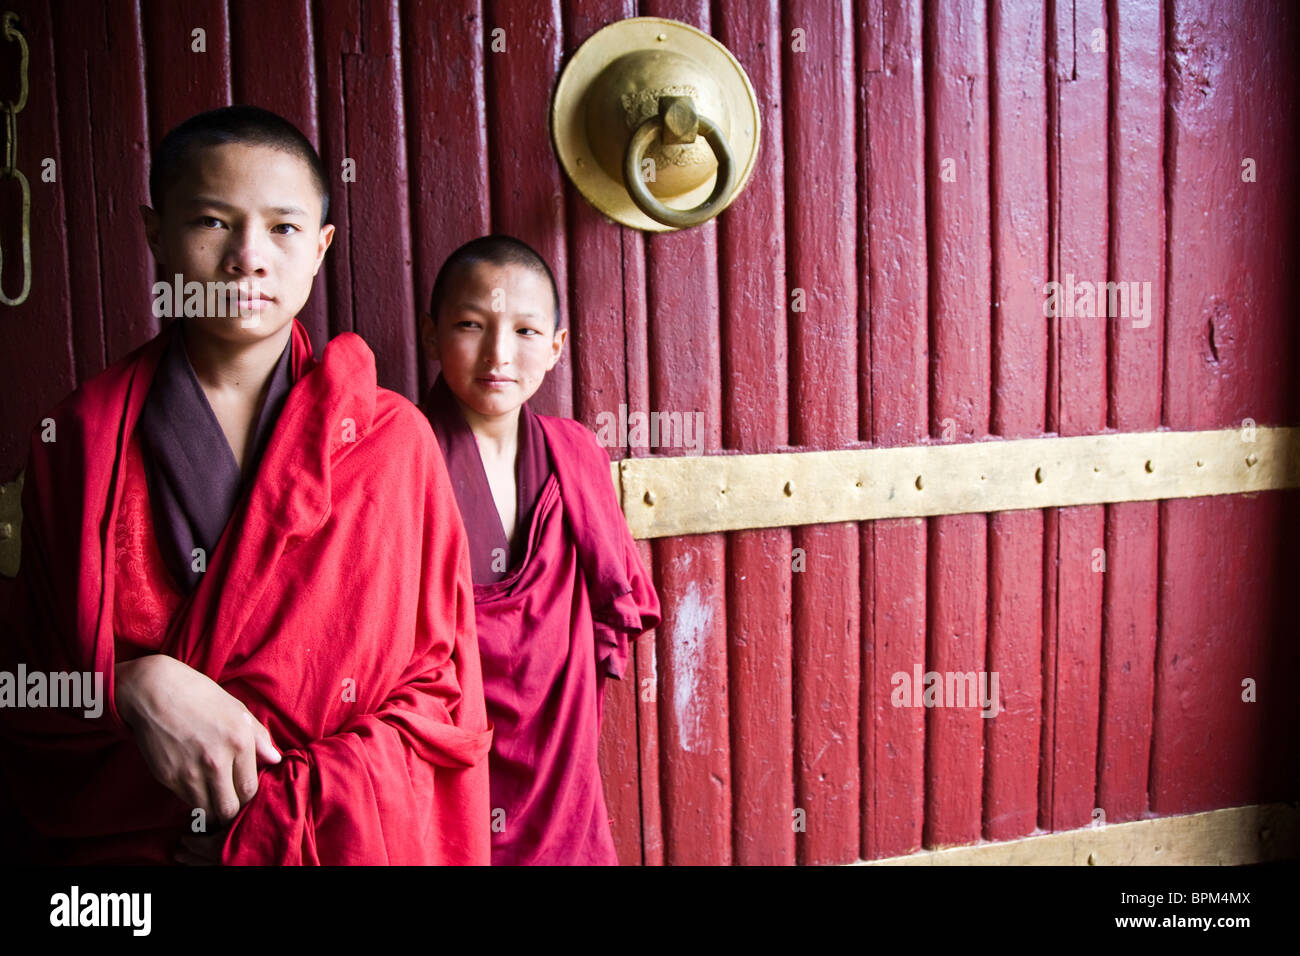 Two young Buddhist monks stand before an ancient monastery door Bhutan Asia - Stock Image